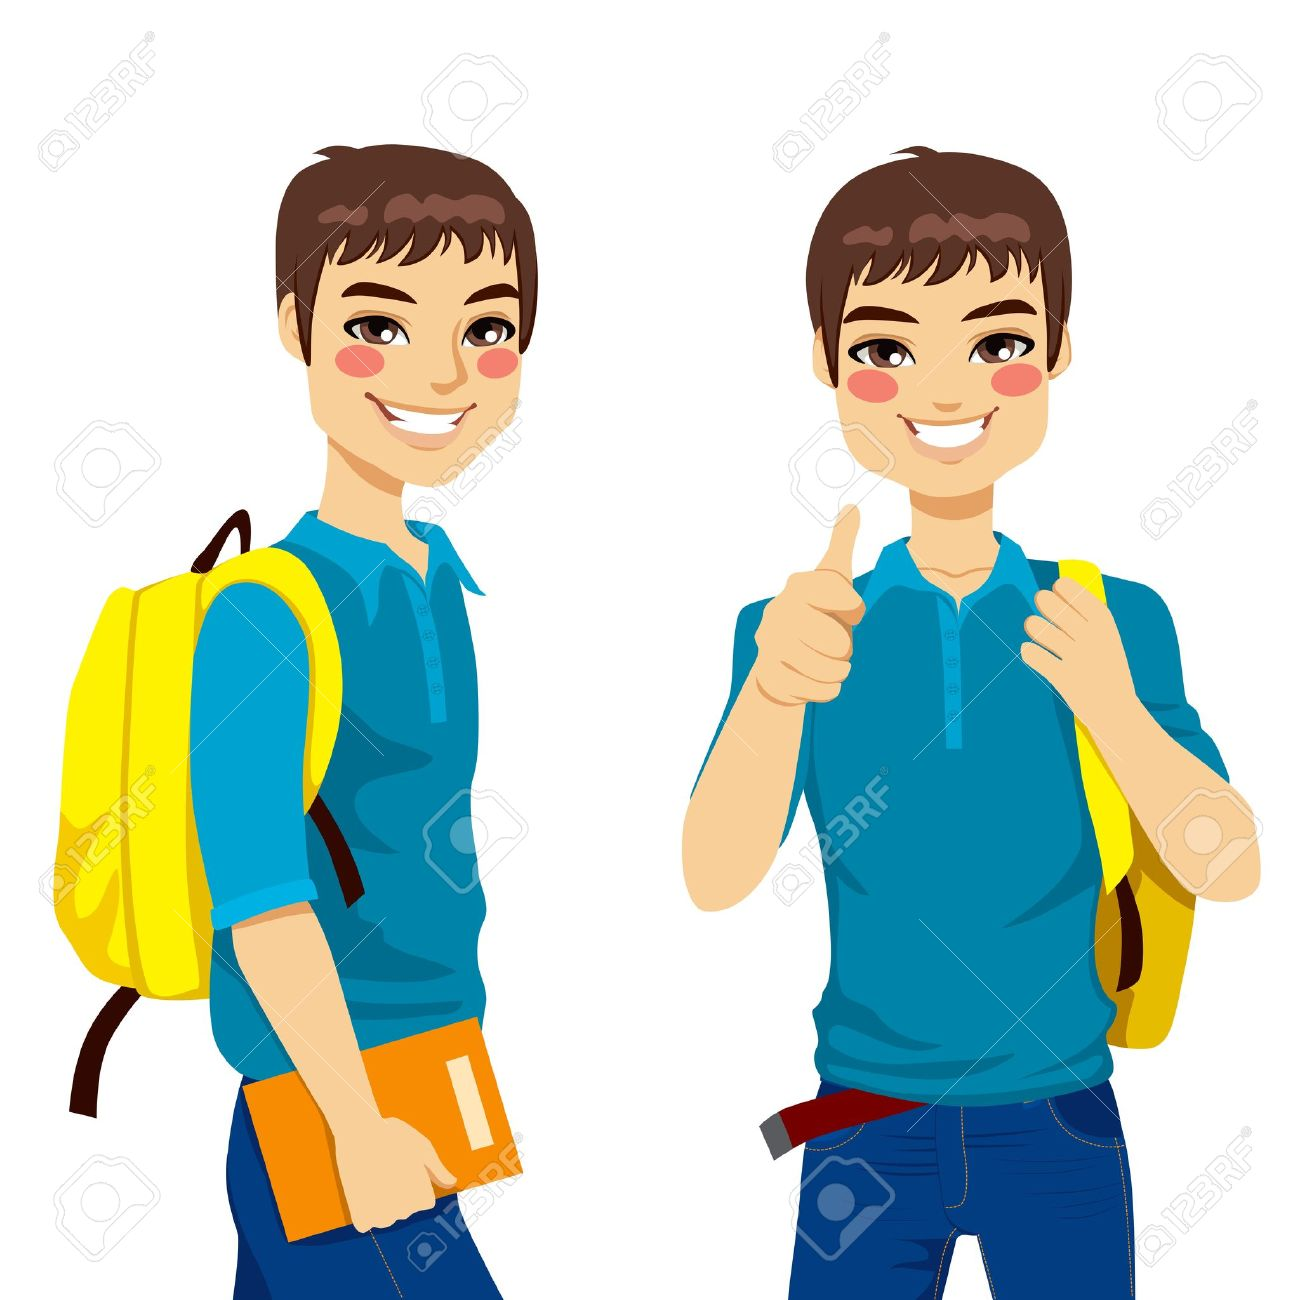 1,844 High School Boys Cliparts, Stock Vector And Royalty Free.